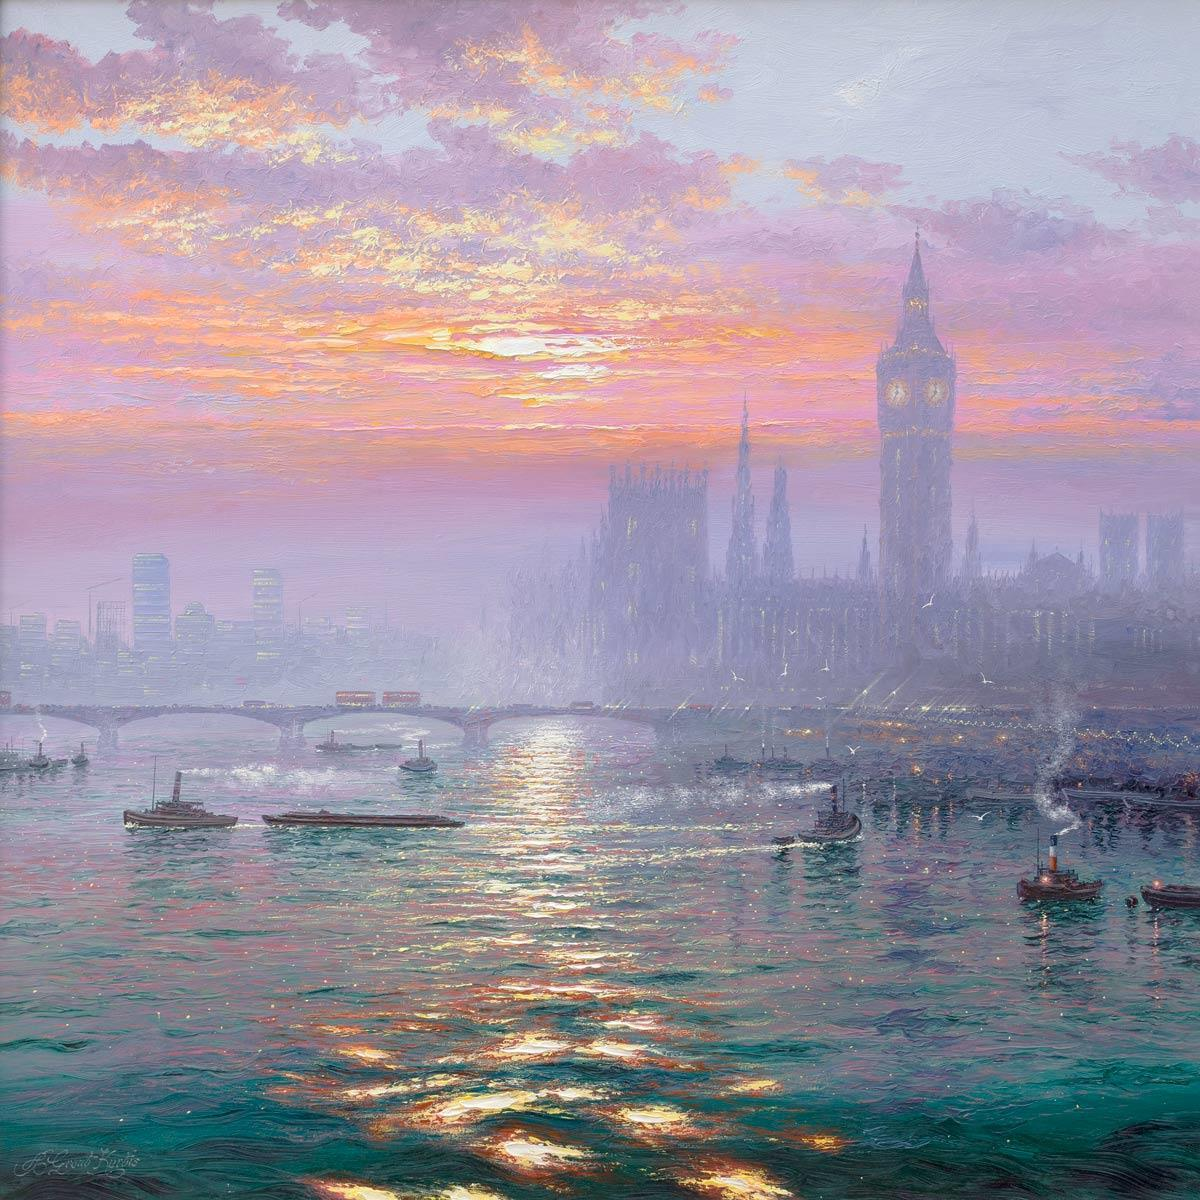 Sunshine Sparkles and Morning Haze over Westminster - Original Andrew Grant Kurtis Framed